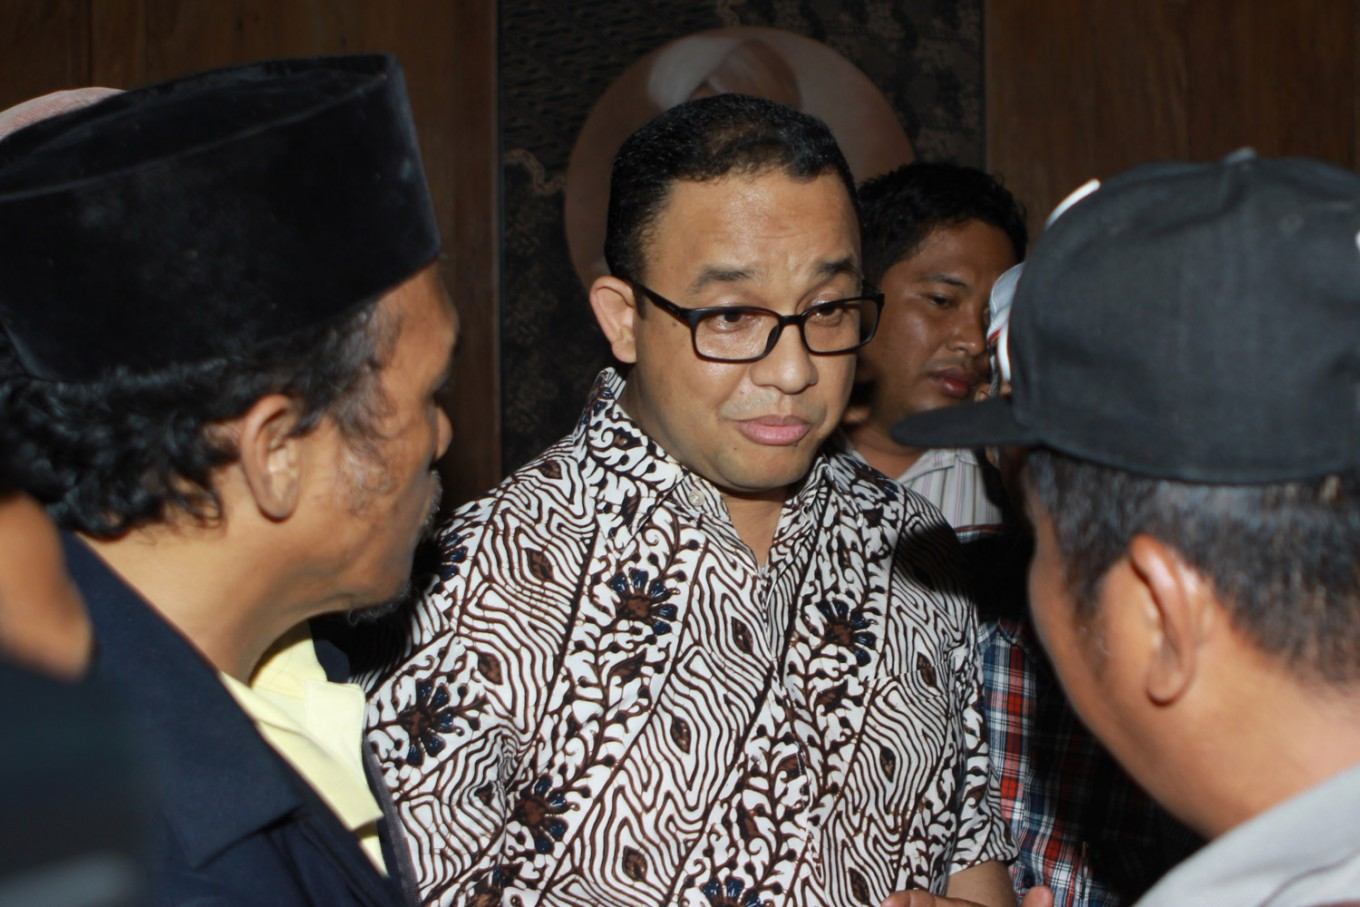 Anies wants to make Jakarta election 'Festival of Ideas'